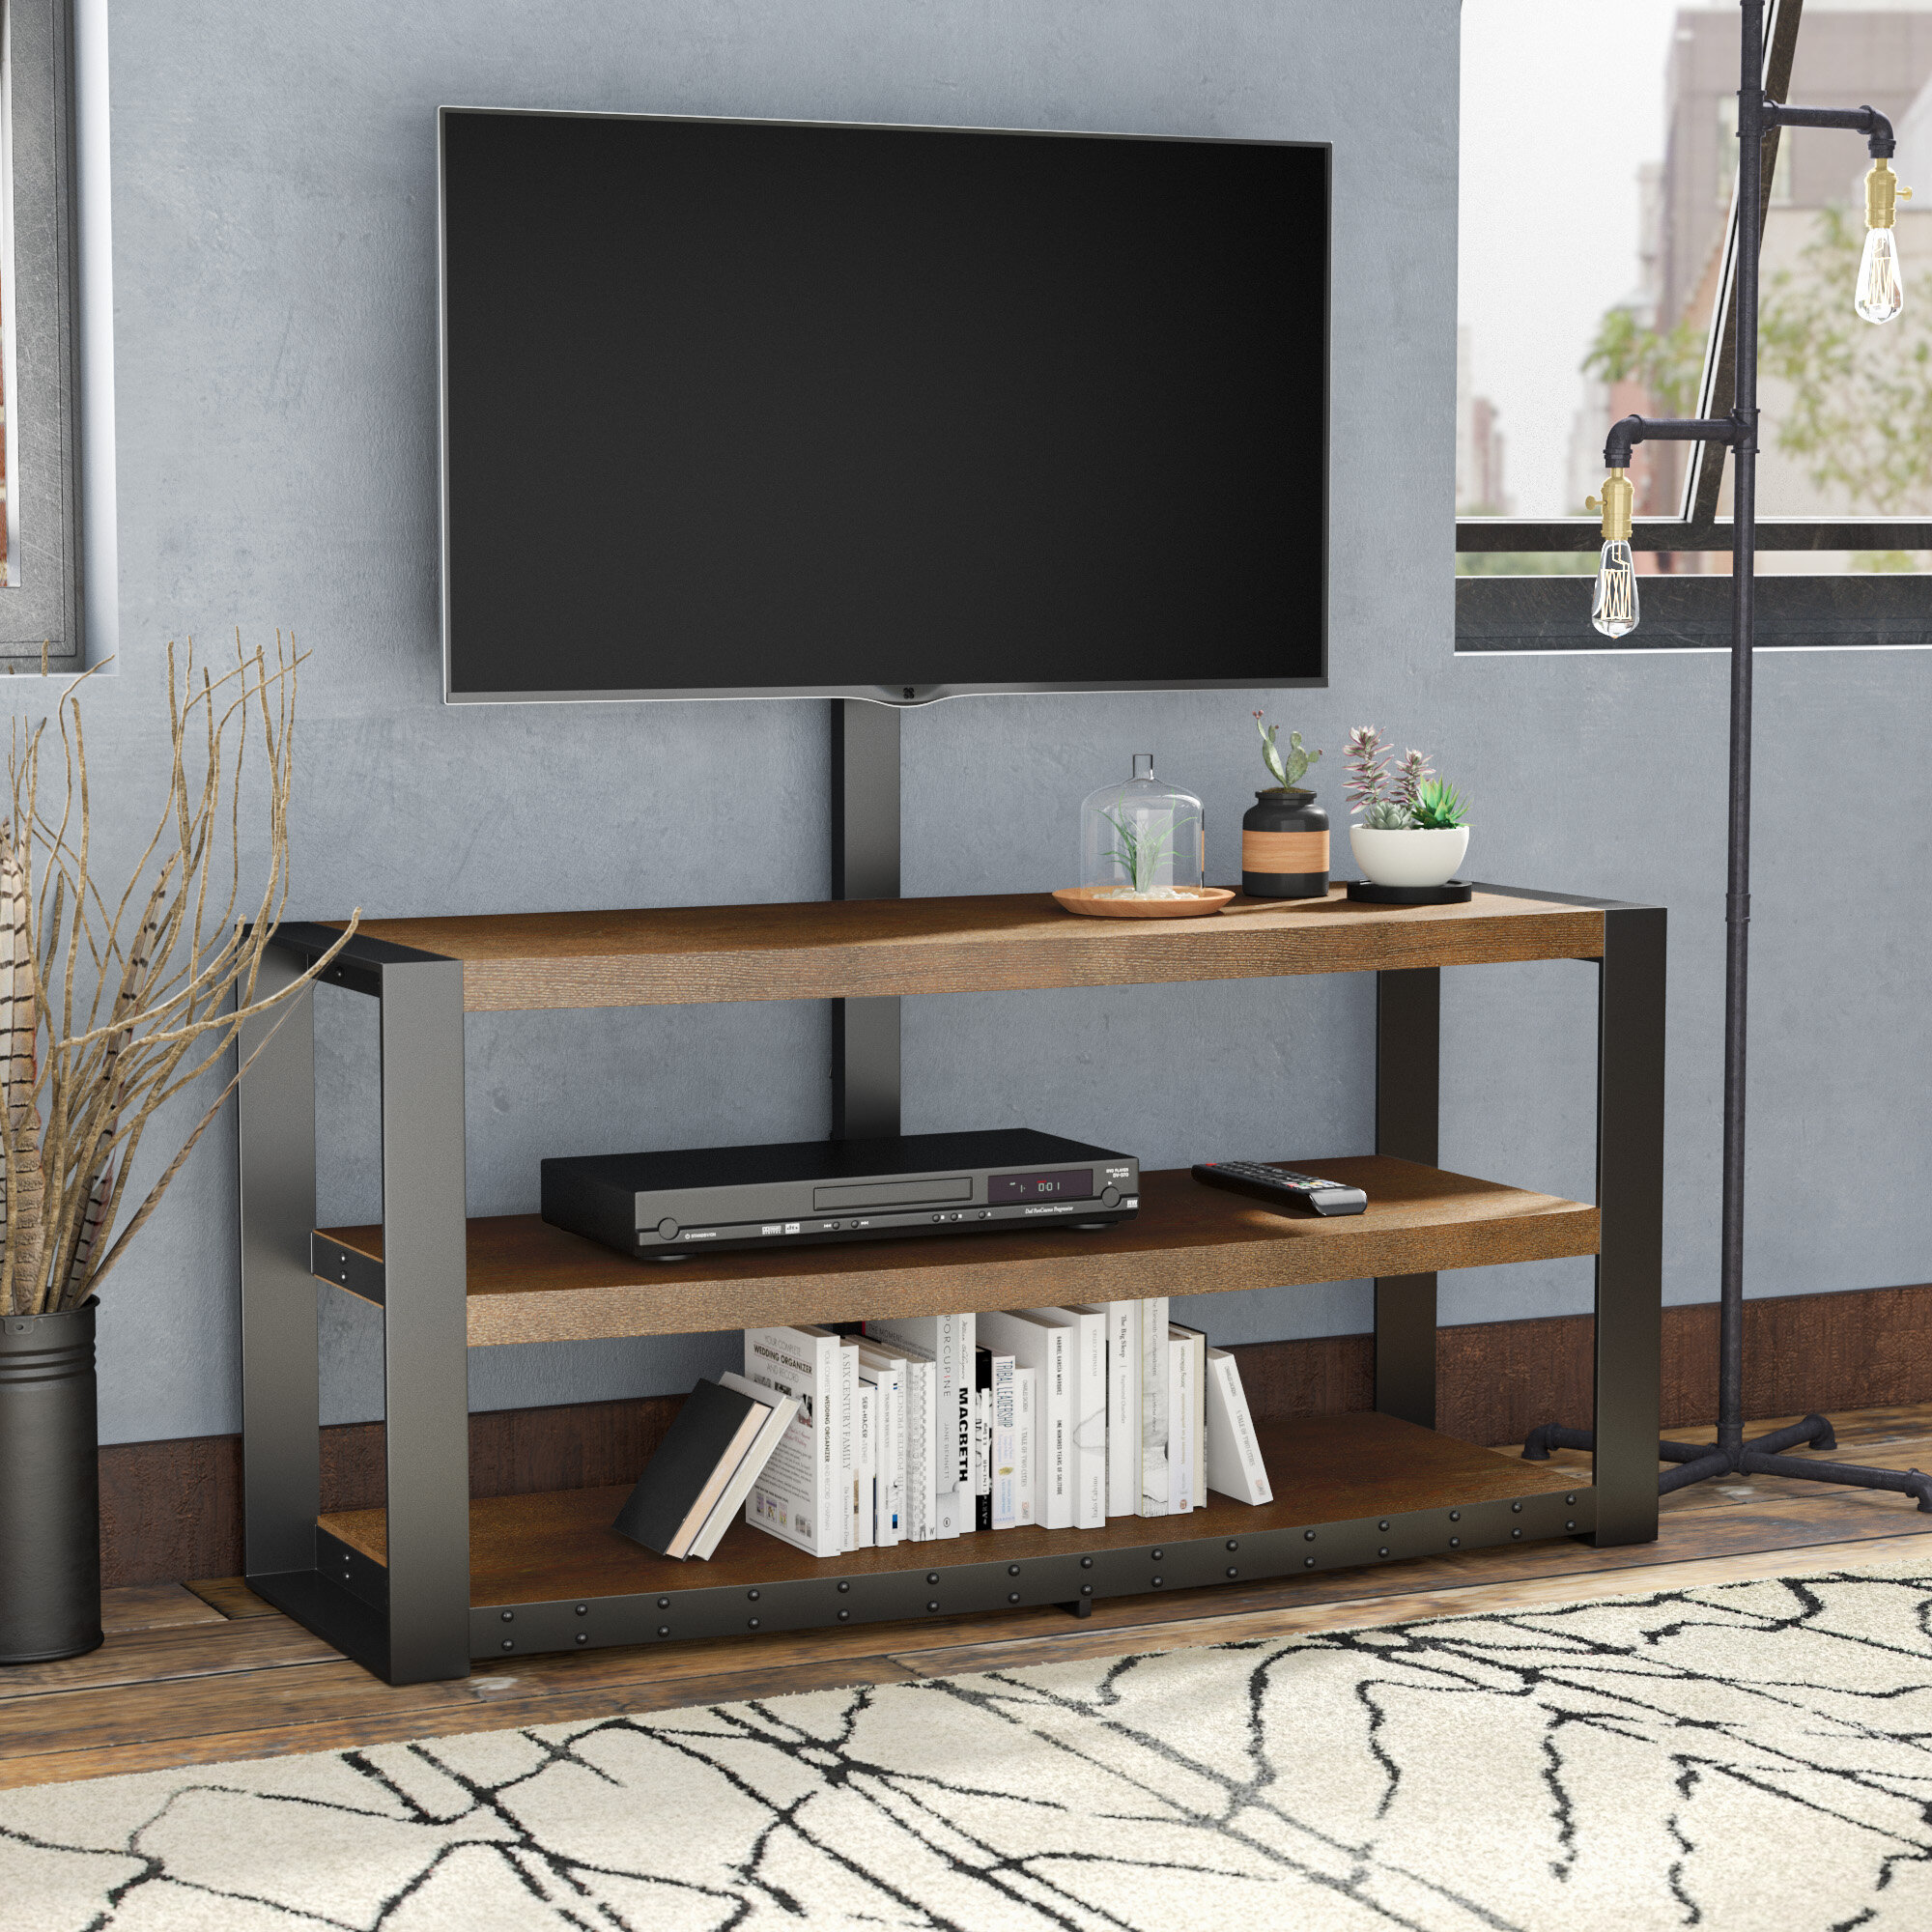 Trent Austin Design Behr Tv Stand For Tvs Up To 65 Reviews Wayfair